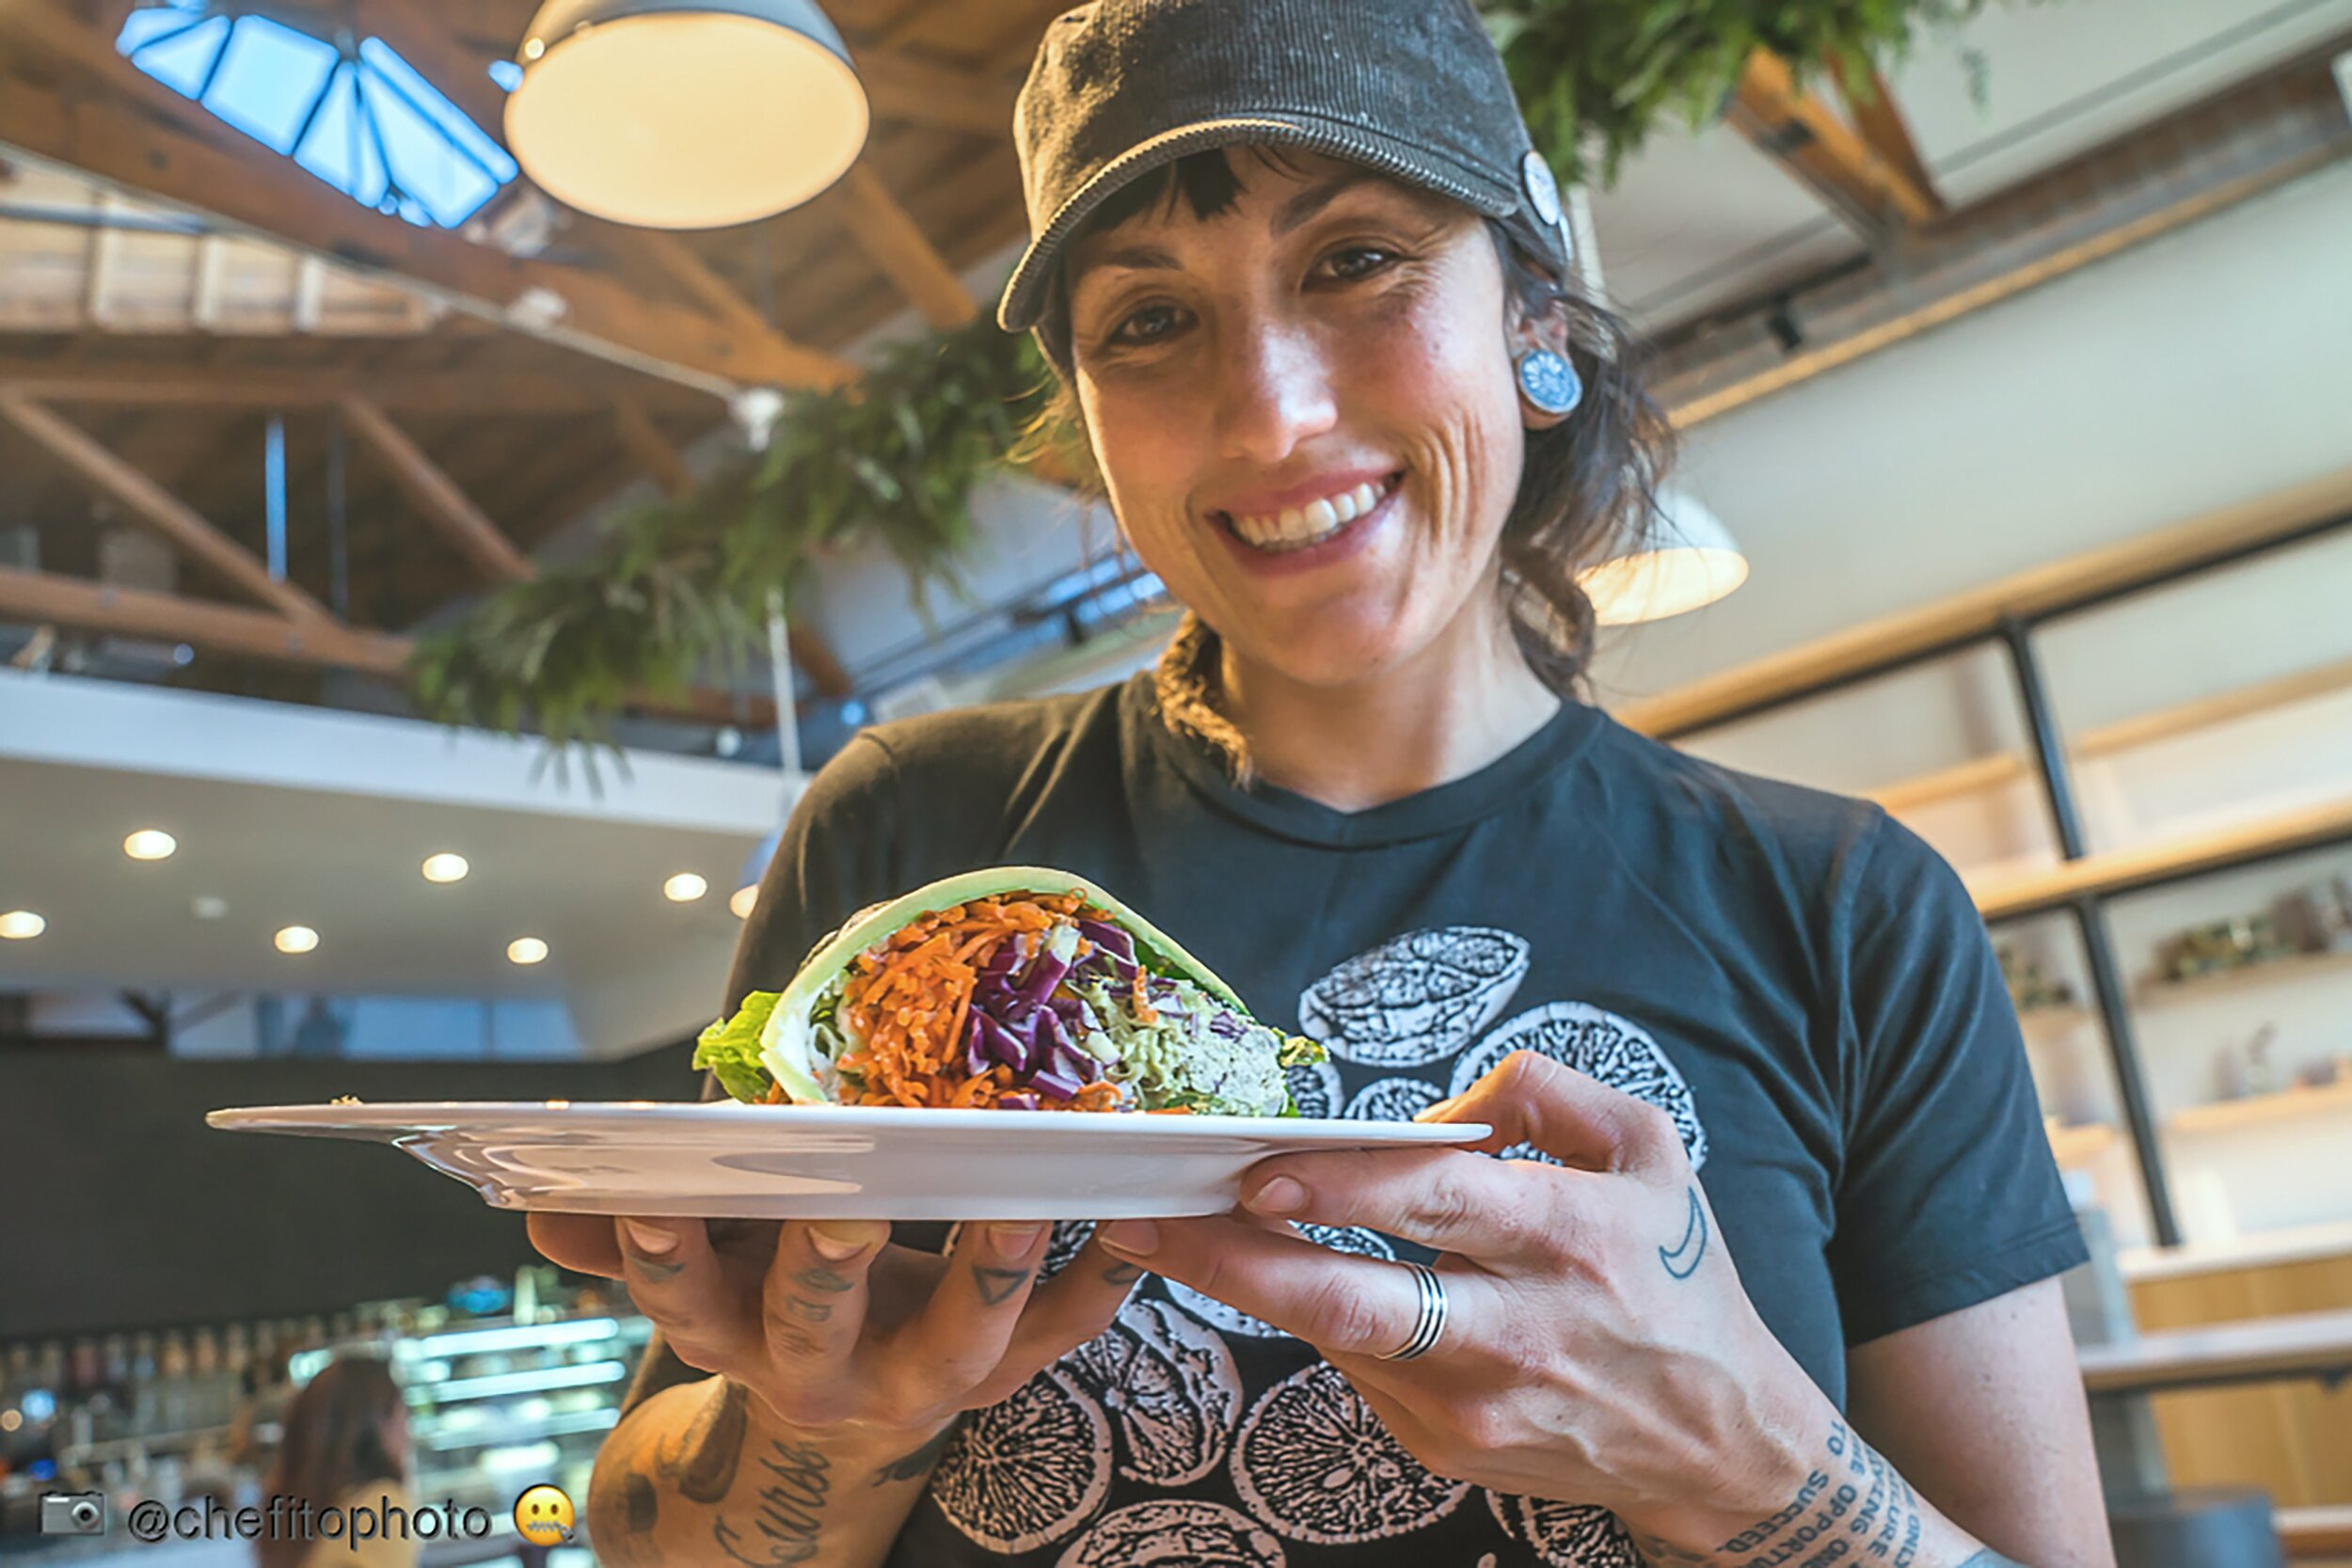 Dawna Bass - Dawna is the chef and co-owner of Under the Sun, Long Beach's first and only raw vegan cafe. She is a self-taught raw food chef who strives to create dishes that can be enjoyed by all.Dawna moved to Long Beach after summer of 2008. In 2011, she met her partner, Chrissy, and shortly after they began their raw food journey with cold-pressed juice. Rainbow Juices opened in Downtown Long Beach in 2014, and Under the Sun opened next-door in 2017.For Dawna, raw vegan cuisine is synonymous with how she wants to live her life: thoughtful, compassionate, growing and flowing with the seasons, ever-changing, unpredictable, and full of life and positivity. She serve food that satisfies the palate, that you feel good about eating, and that contributes to your overall well-being.